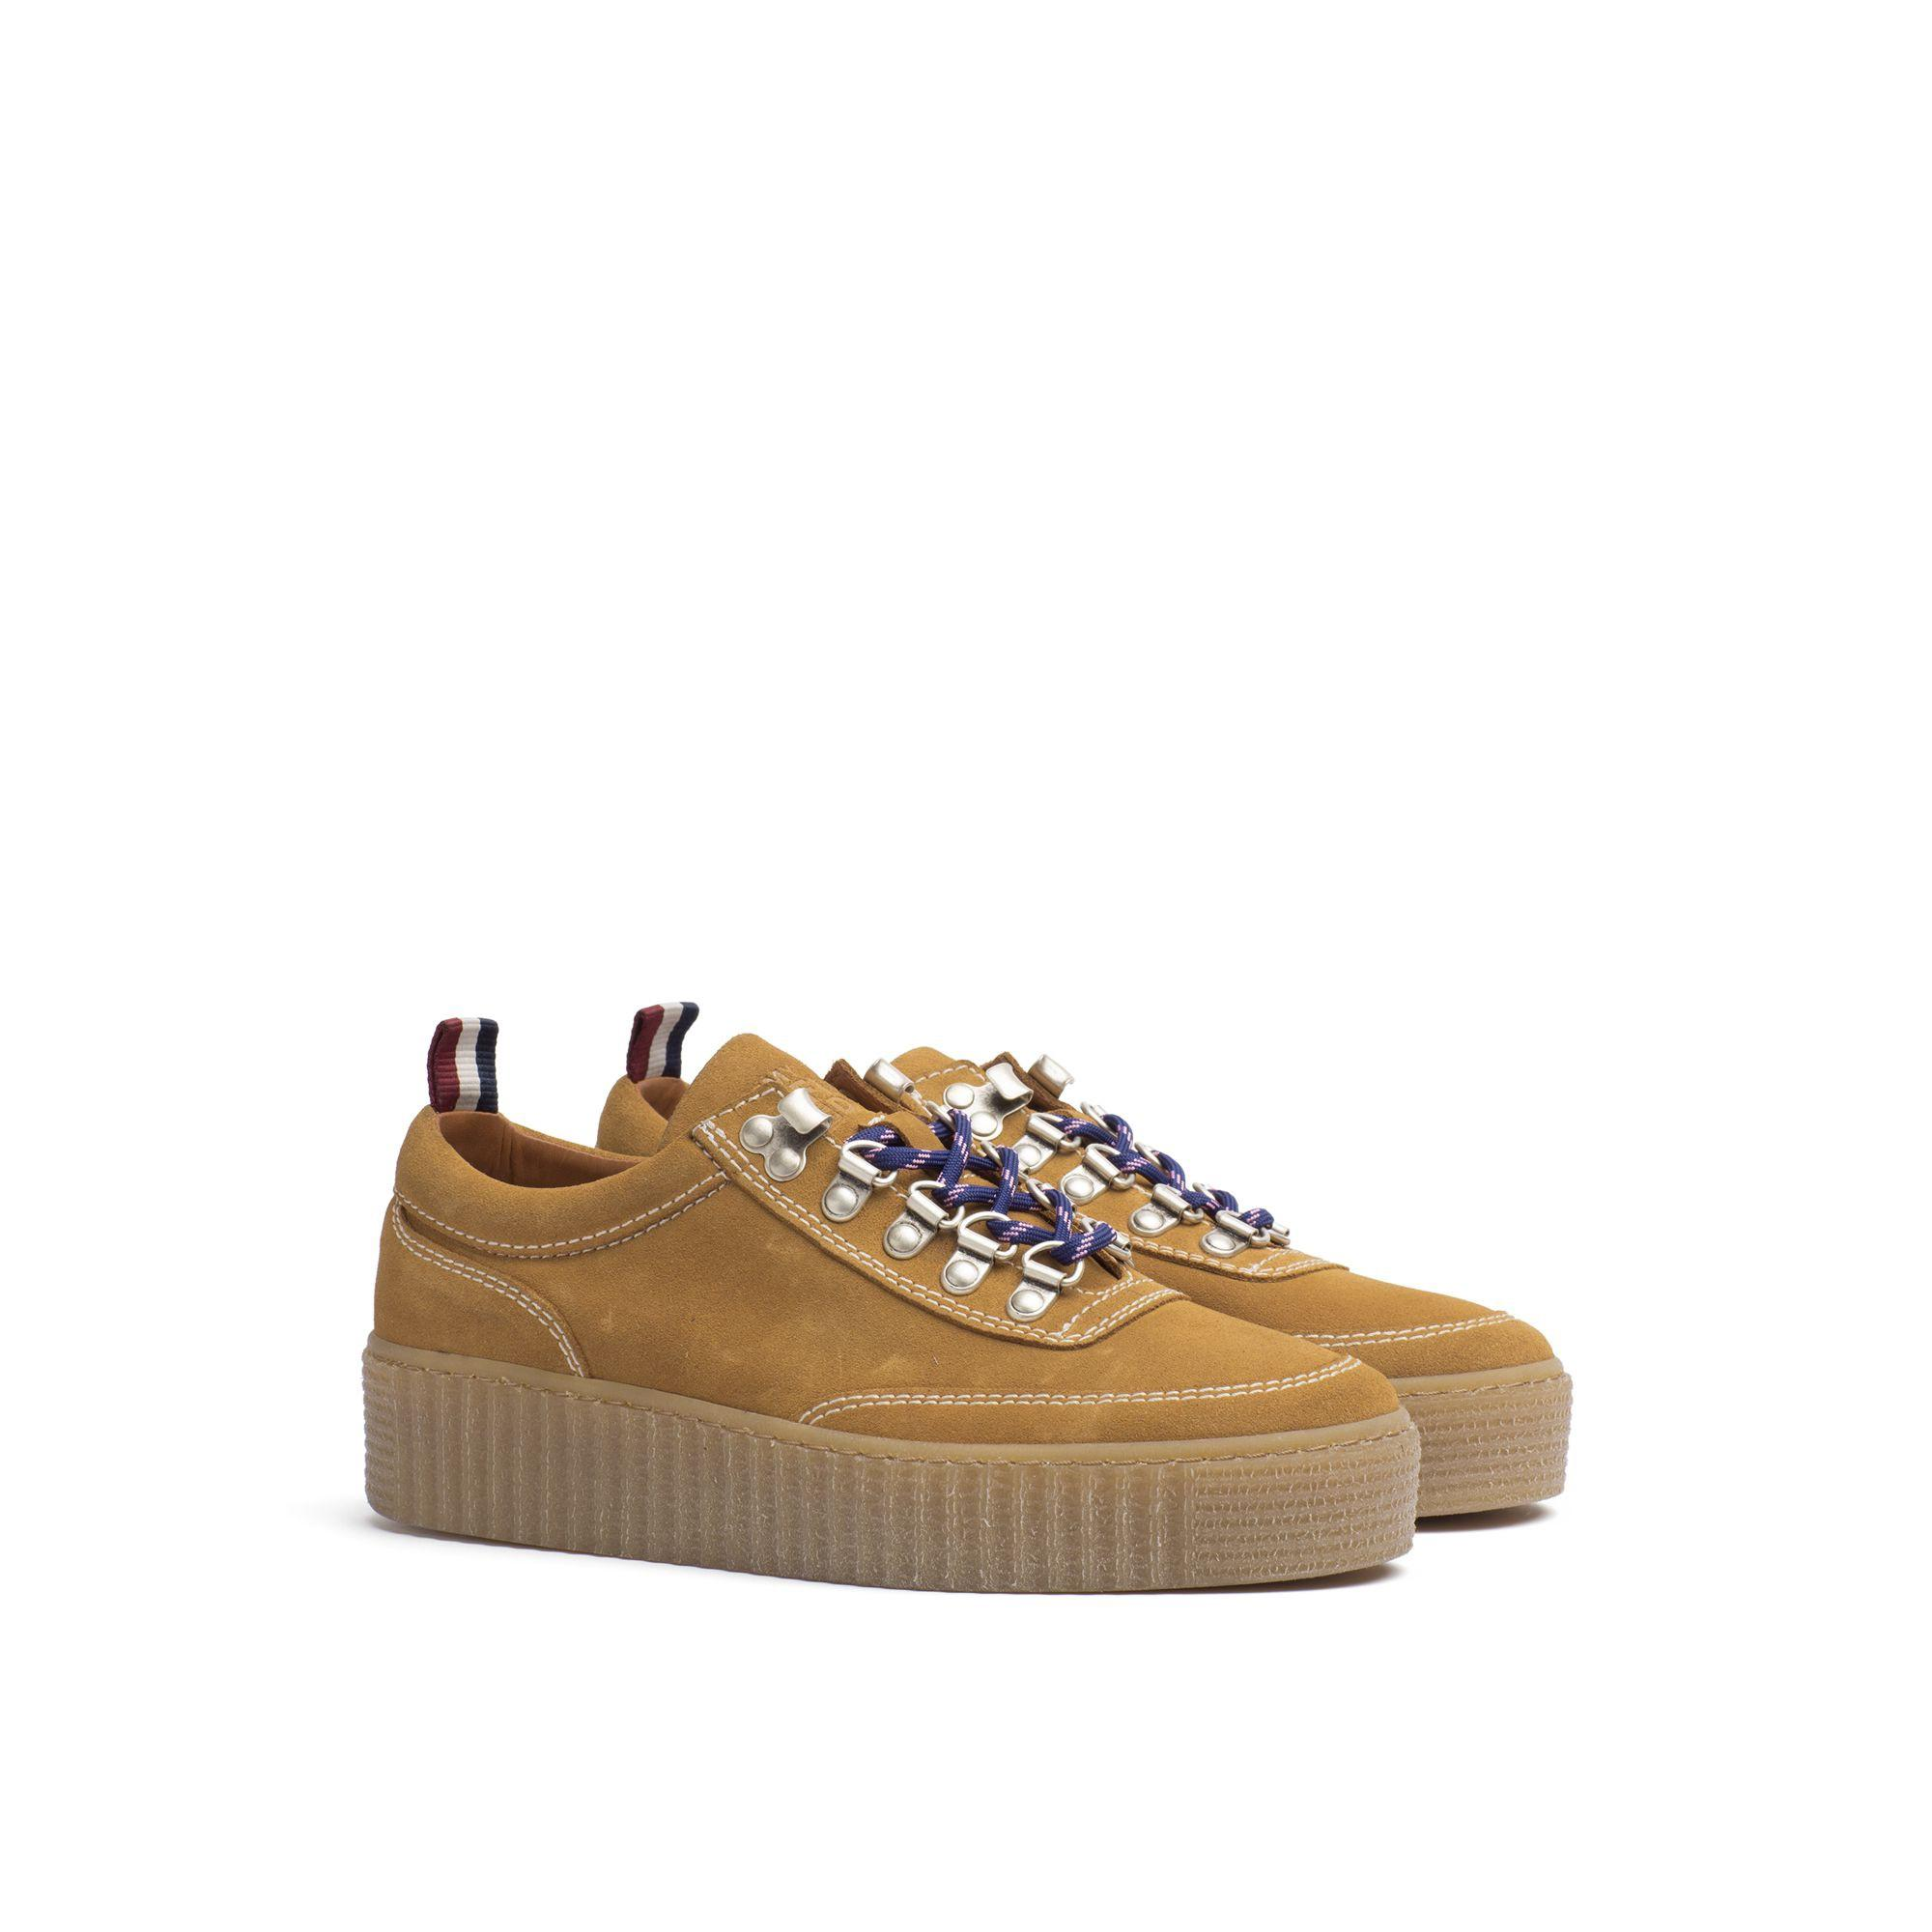 a68ee8b042c2 Tommy Hilfiger Suede Creeper - Spruce Yellow